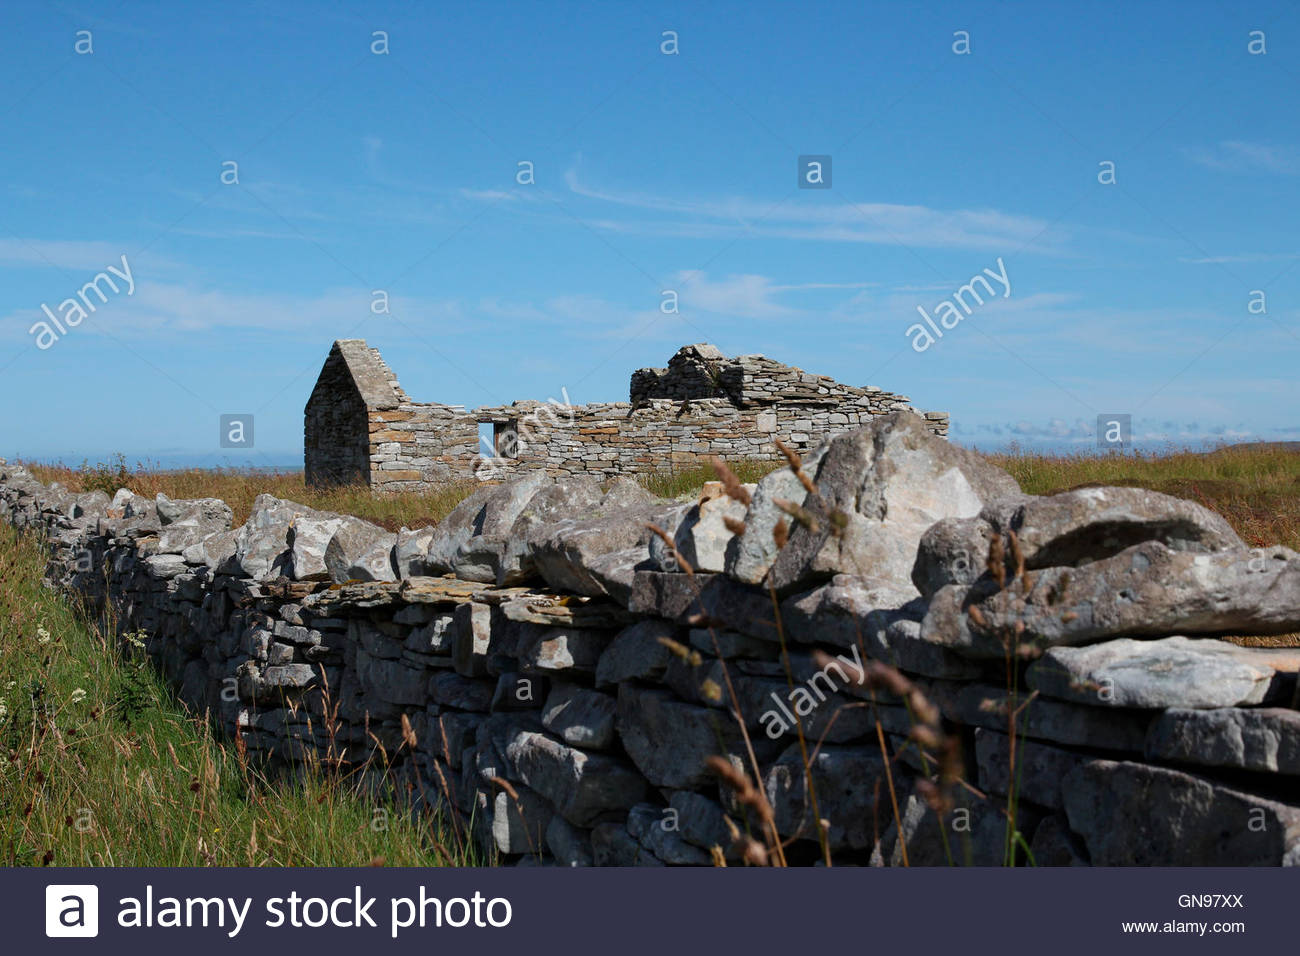 ruin at ring road on the island of rousay, orkney islands, scotland, united kingdom - Stock Image